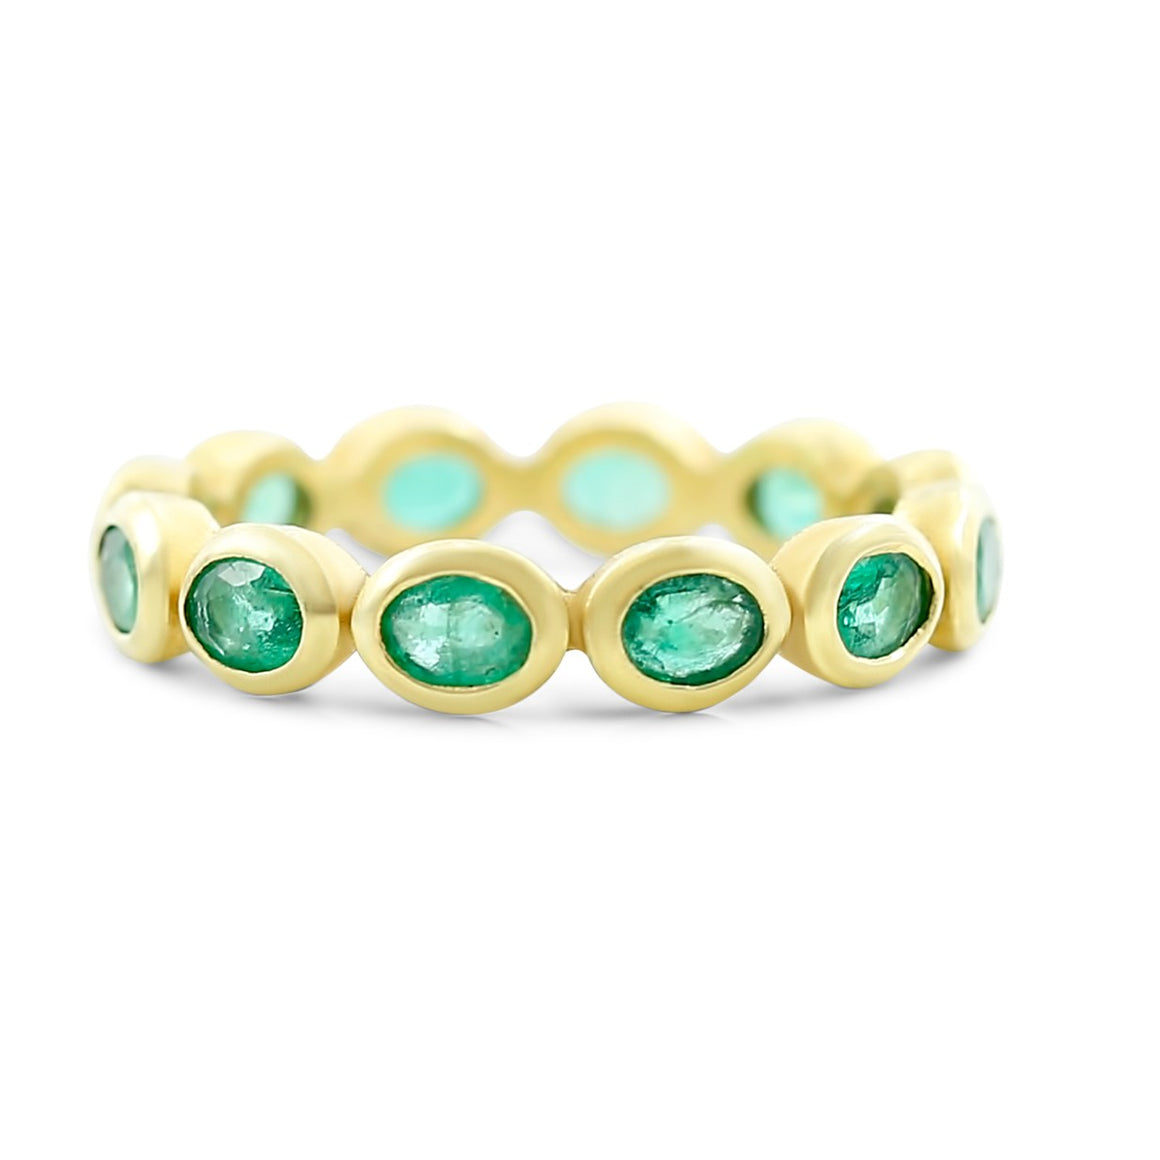 emerald gemstone eternity band bezel set in 18k yellow gold